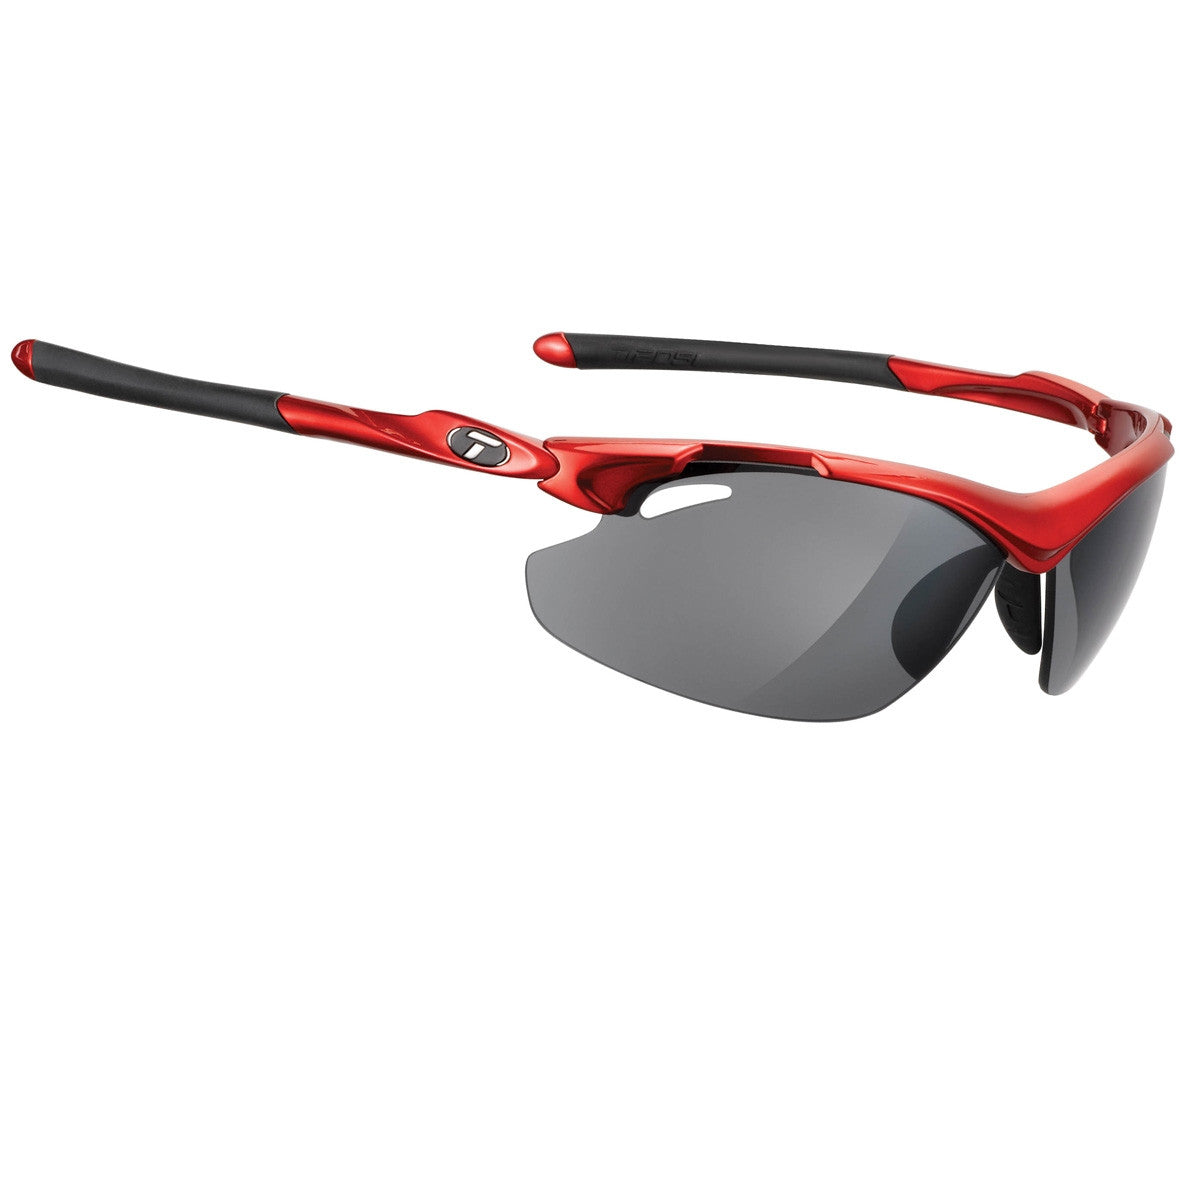 TIFOSI TYRANT 2.0 INTERCHANGEABLE LENS SUNGLASSES